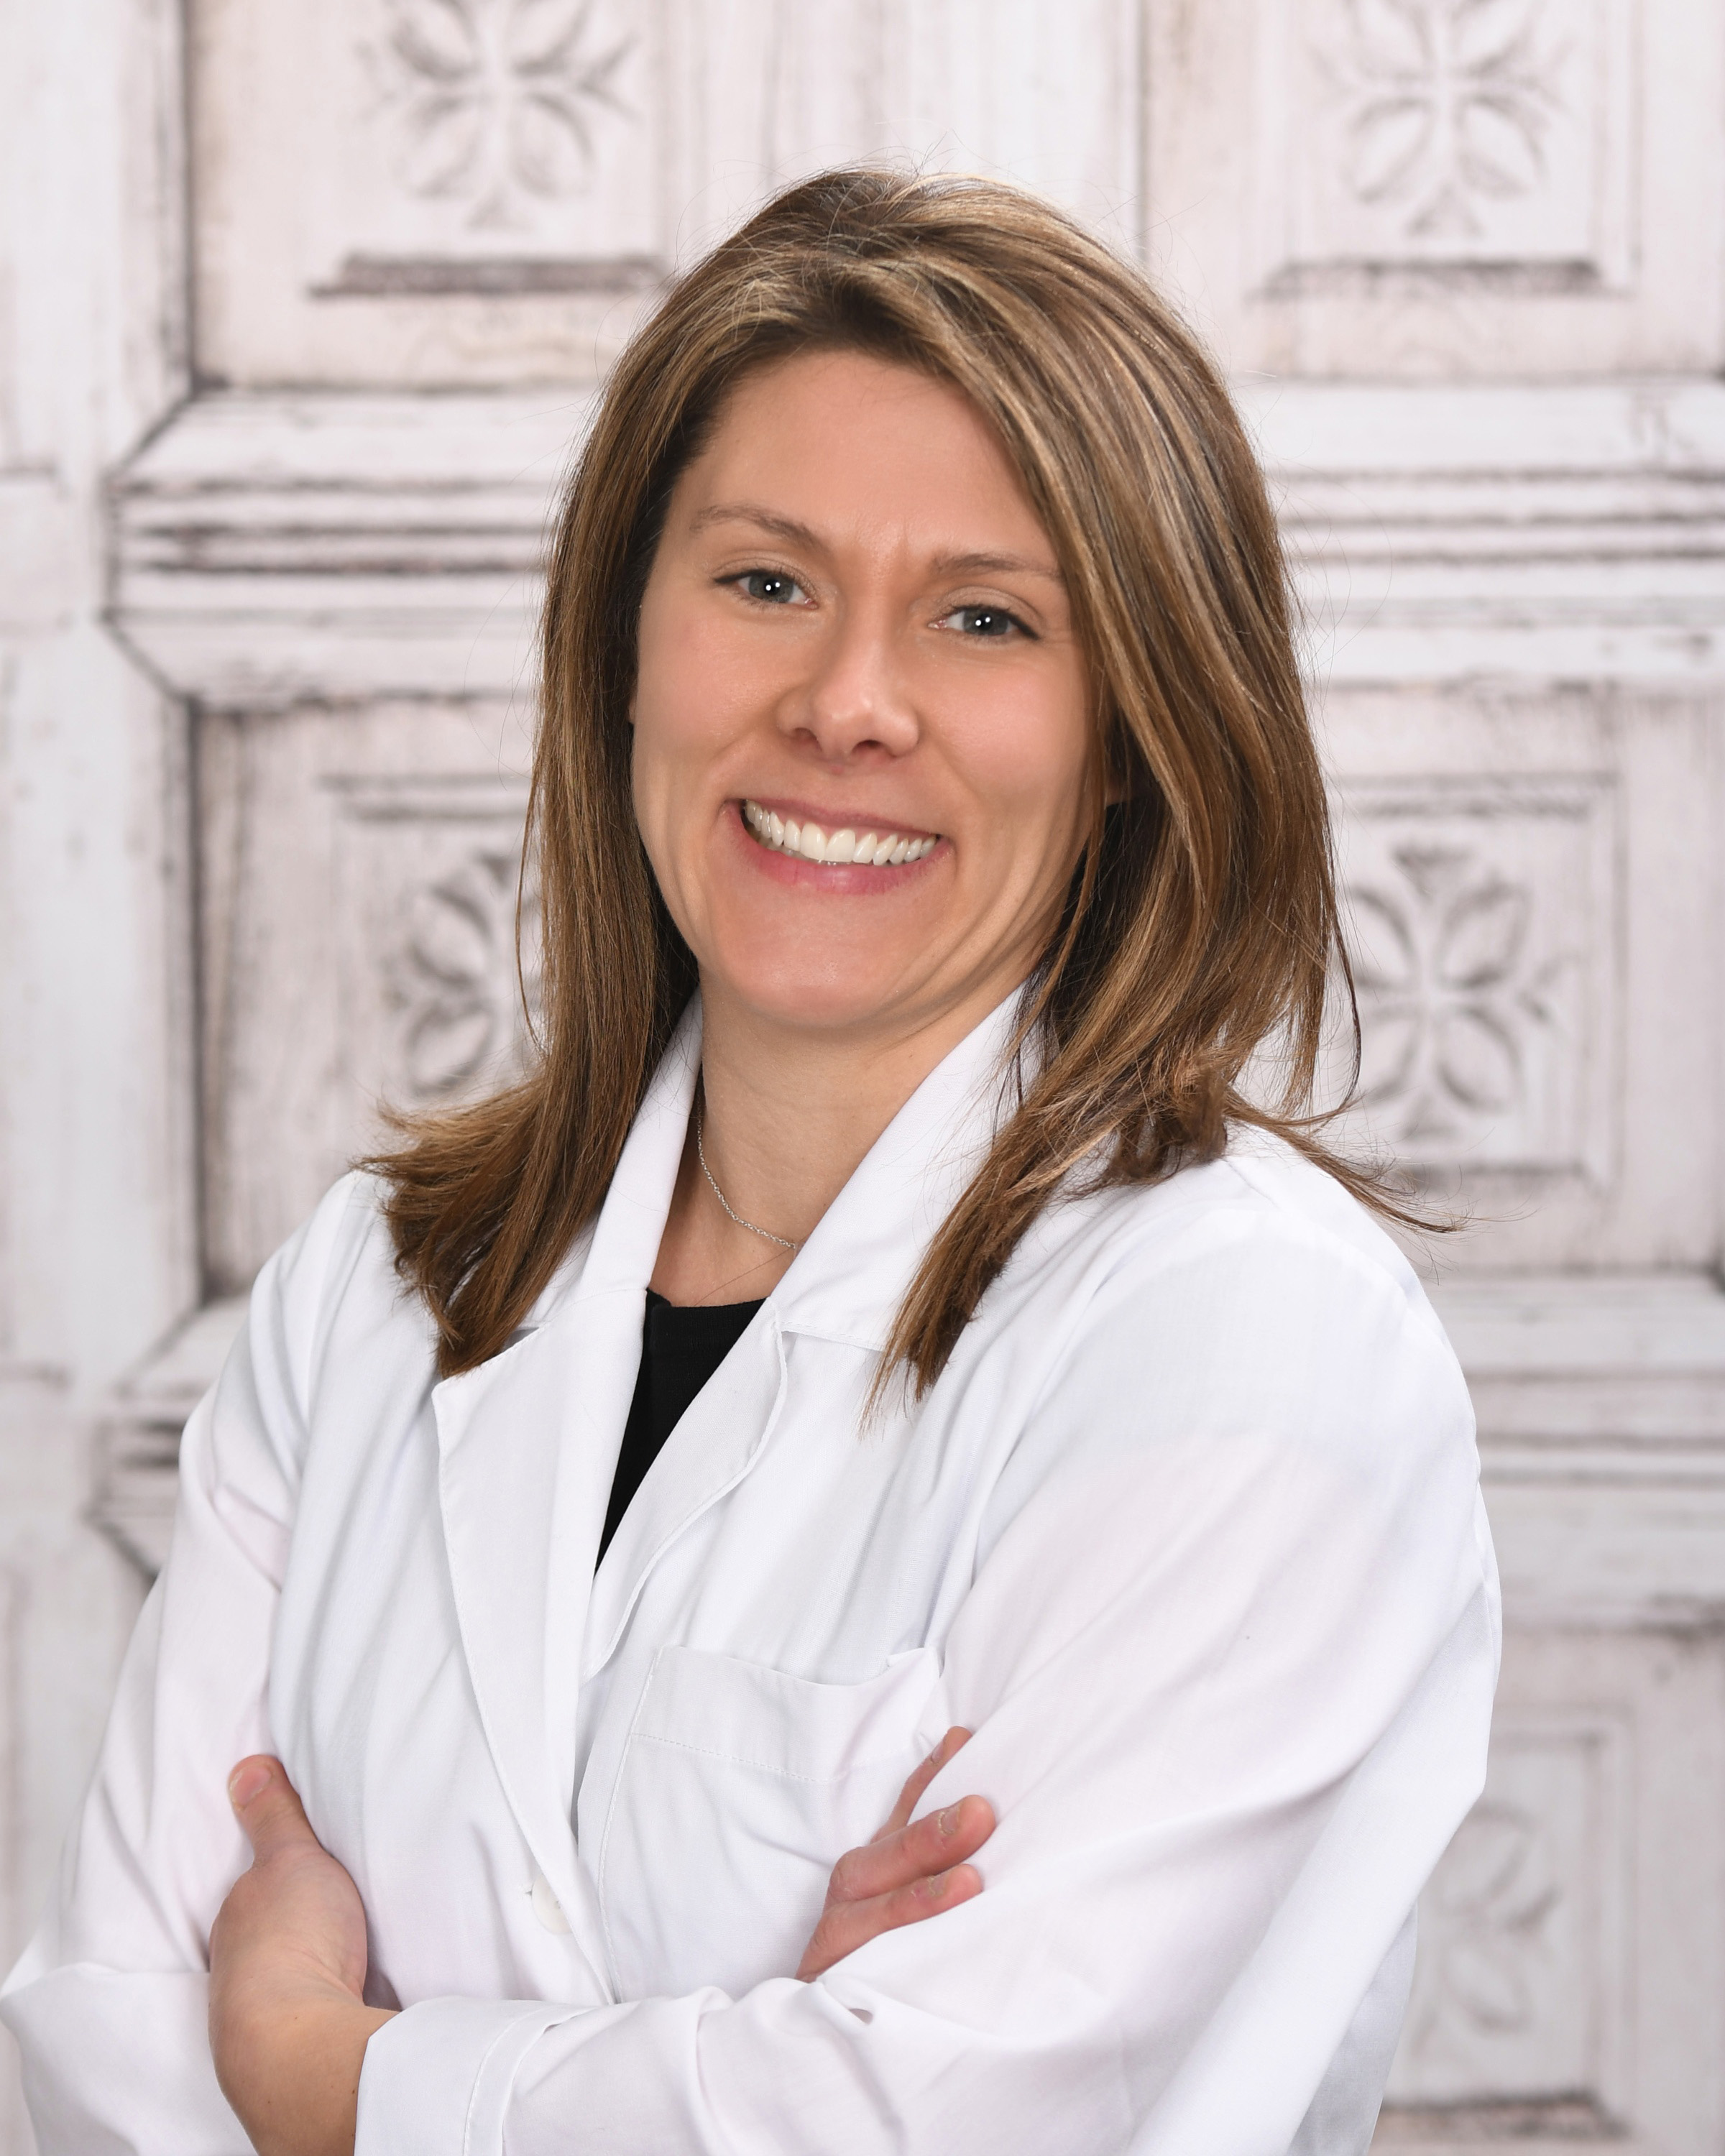 Hillary Howell, PharmD - Hillary, Founder of Apothecary & Co has been in the pharmacy business over 20 years and has practiced as a pharmacist for 15 years. Hillary enjoys involving herself in many community pharmacy projects and is always interested in learning new aspects of health and wellness. She is continually seeking to learn about new integrative functional medicine health topics as well as herbs and herbalism. She is currently enrolled in a Certified Nutritionist Consultant program. When she is not working, Hillary loves to spend time with her 2 boys, rescue horses, and making herbal salves and tinctures.